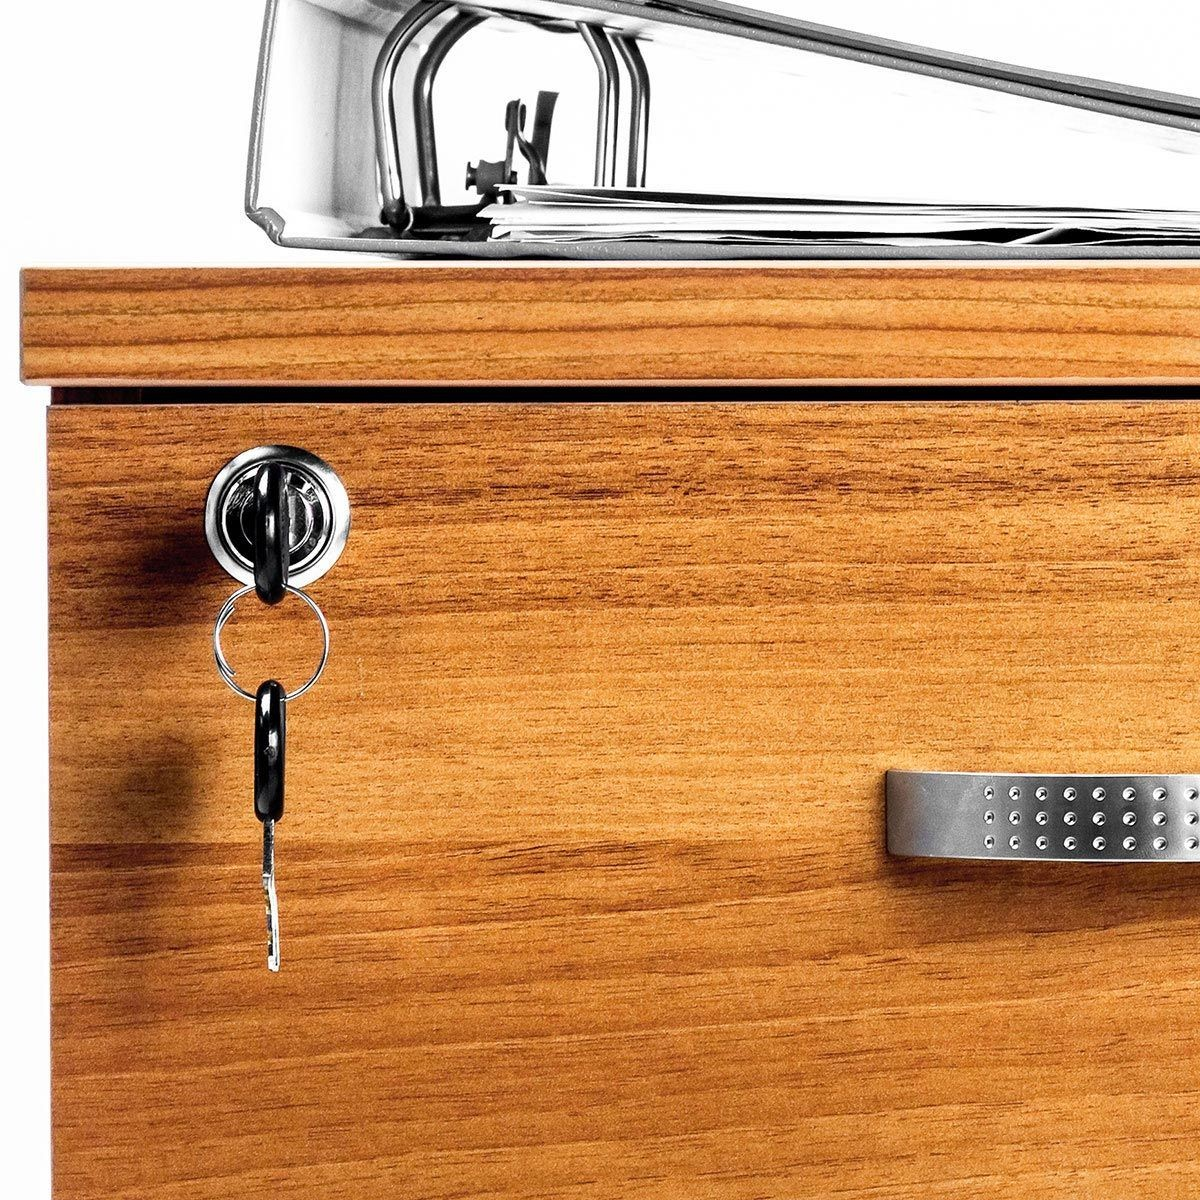 Furniture Locks and Cabinet Locks